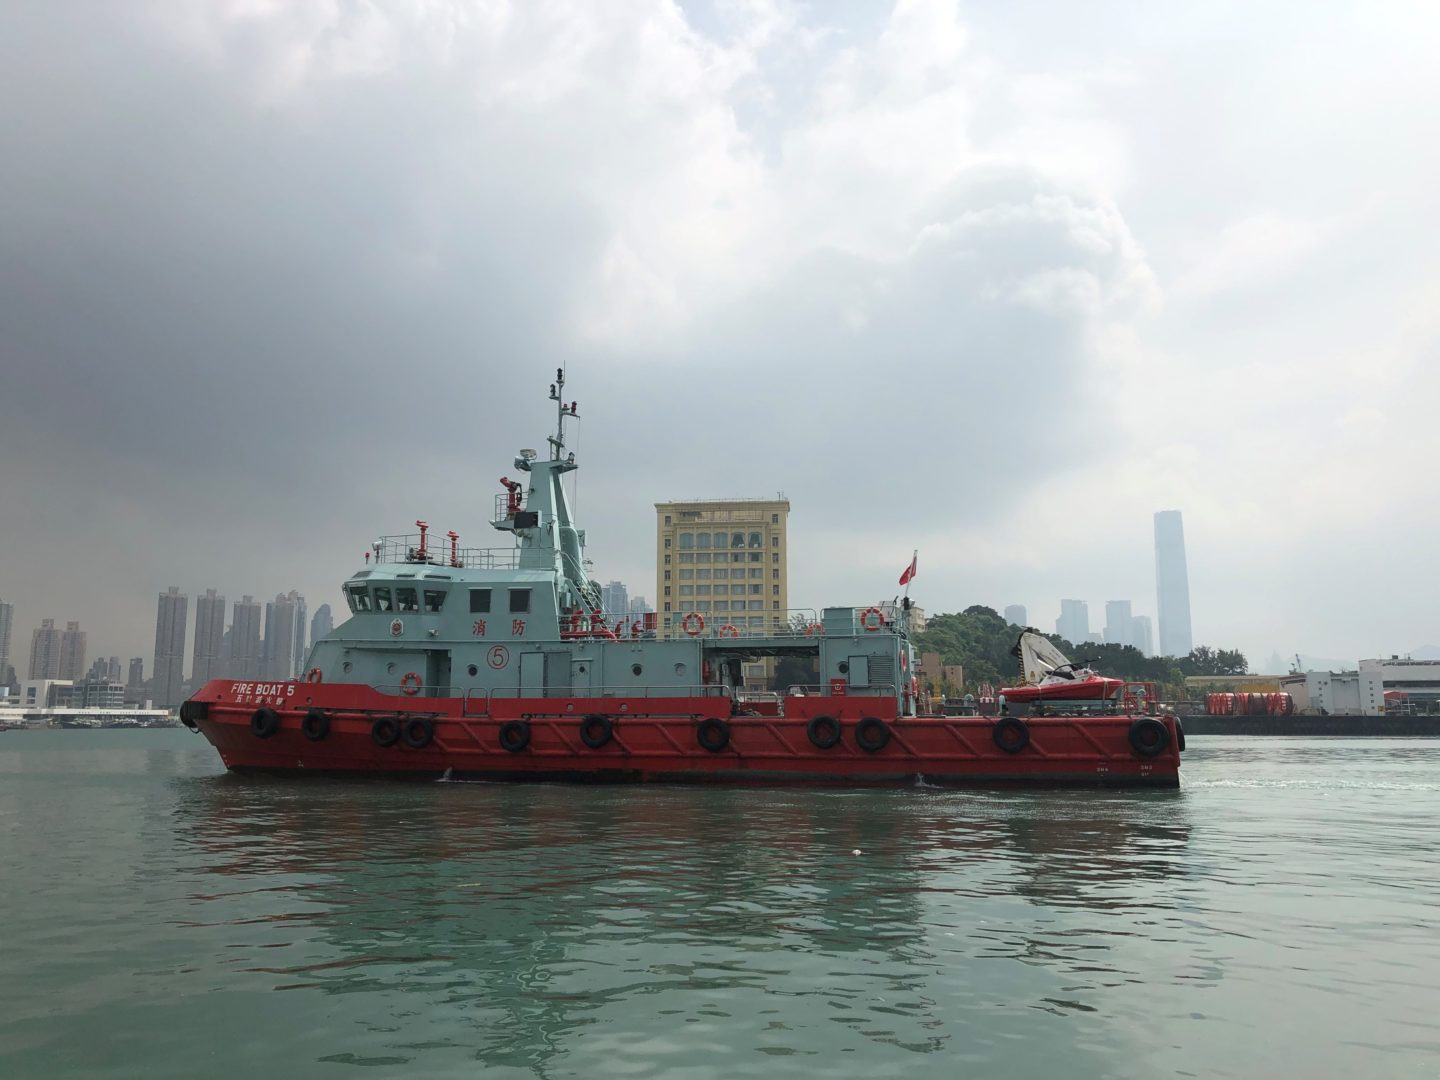 RescueRunner onboard Hong Kong Fire Depåartment Vessel